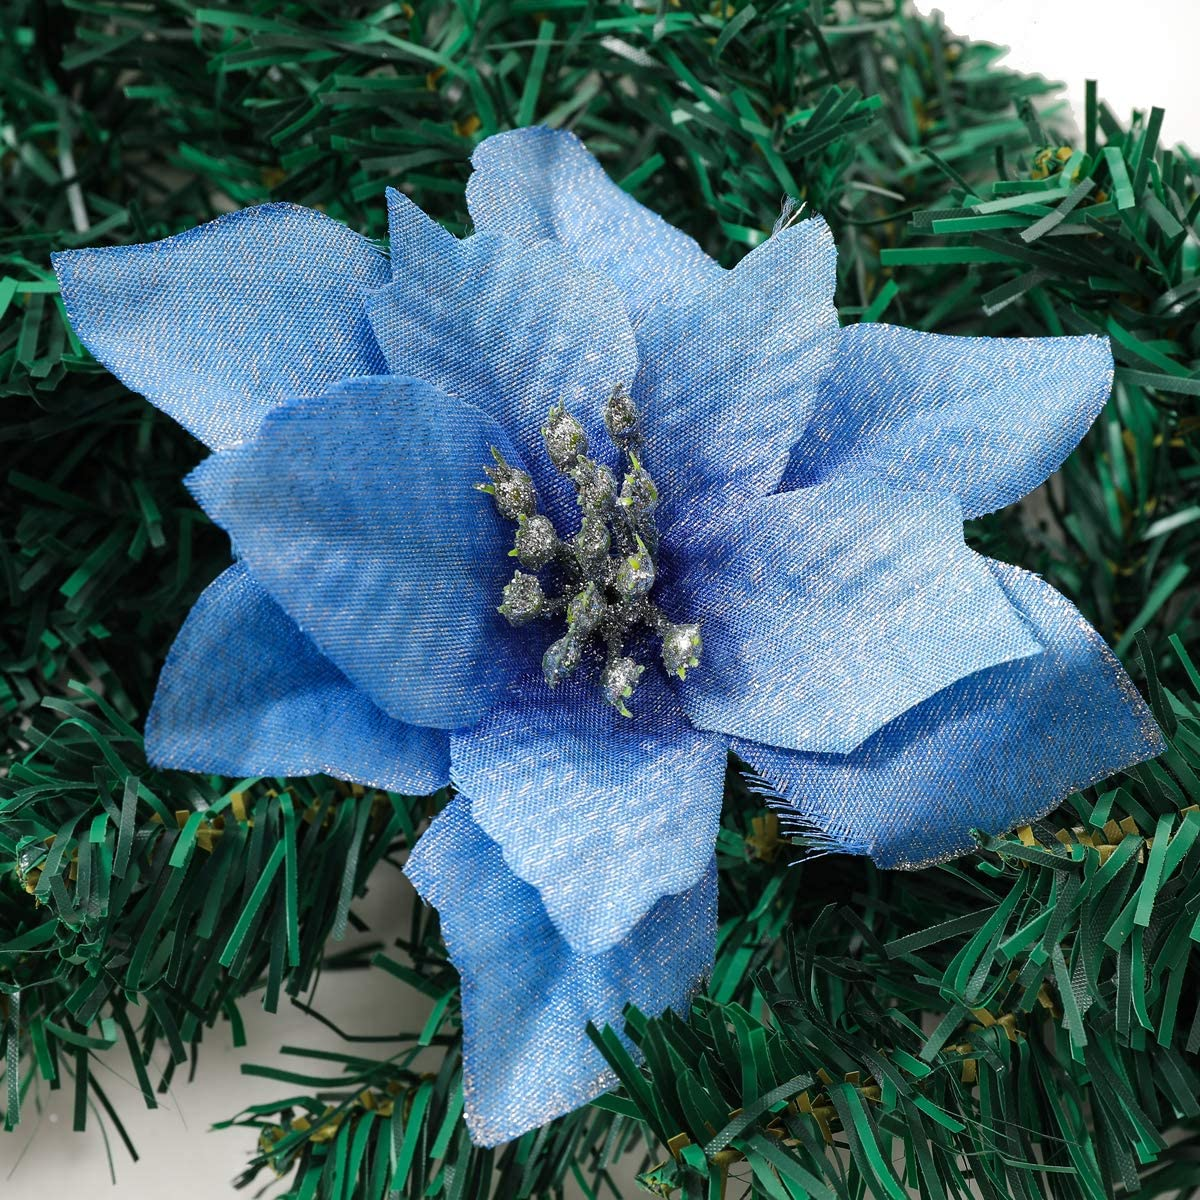 Glitter Poinsettia Flower Christmas Tree Ornament, Artificial Flower Home Decorations for Christmas/Wedding/Holiday Party, Pack of 24, Blue